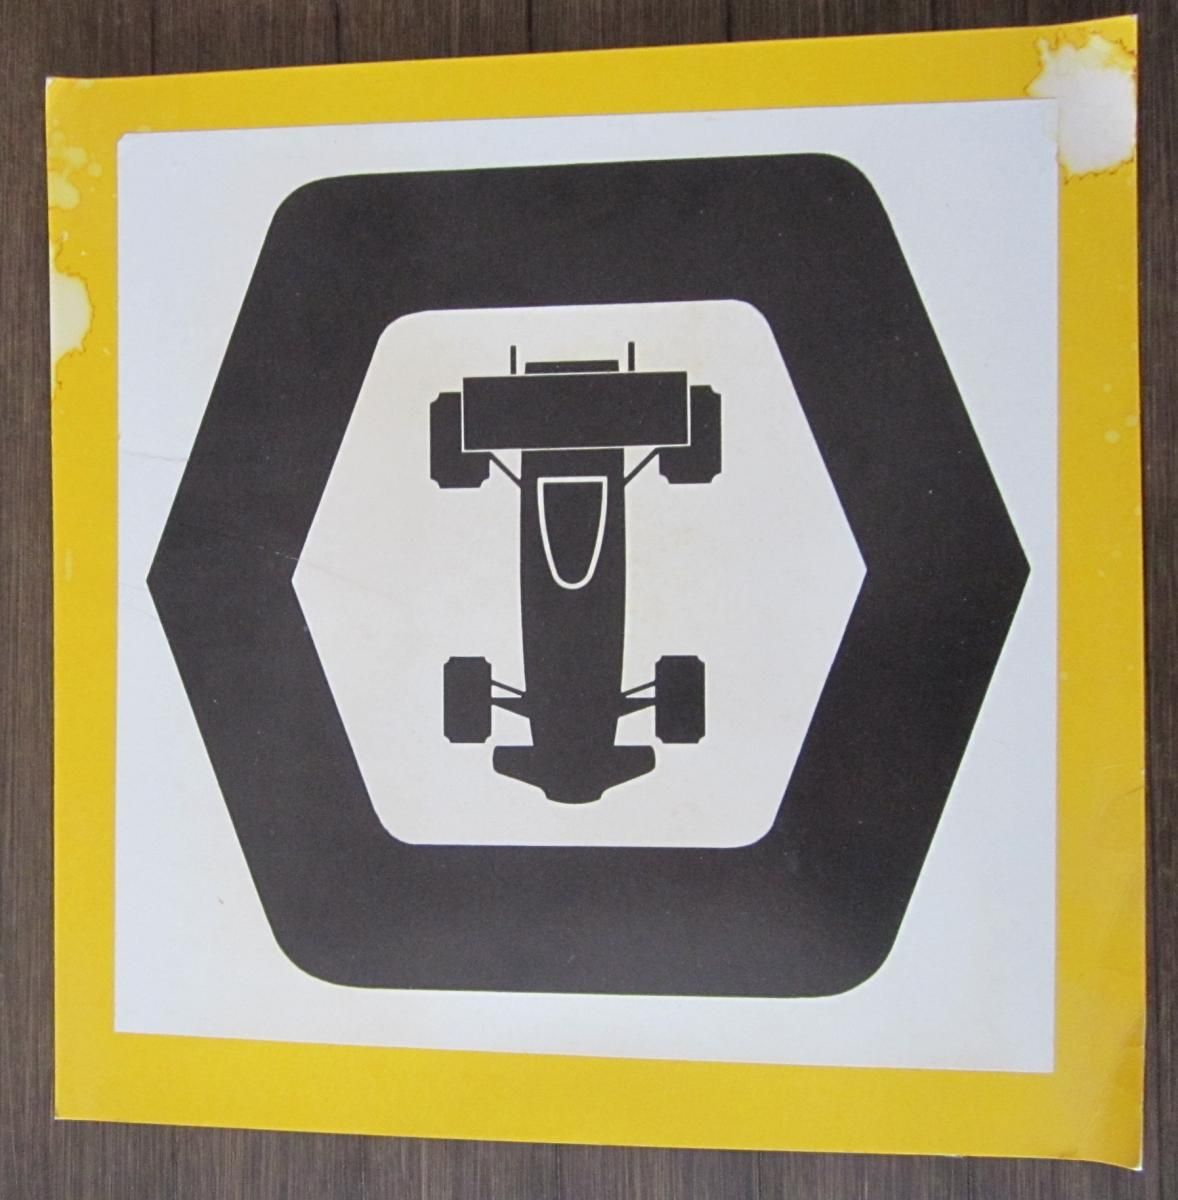 '70s Track Sign (?)